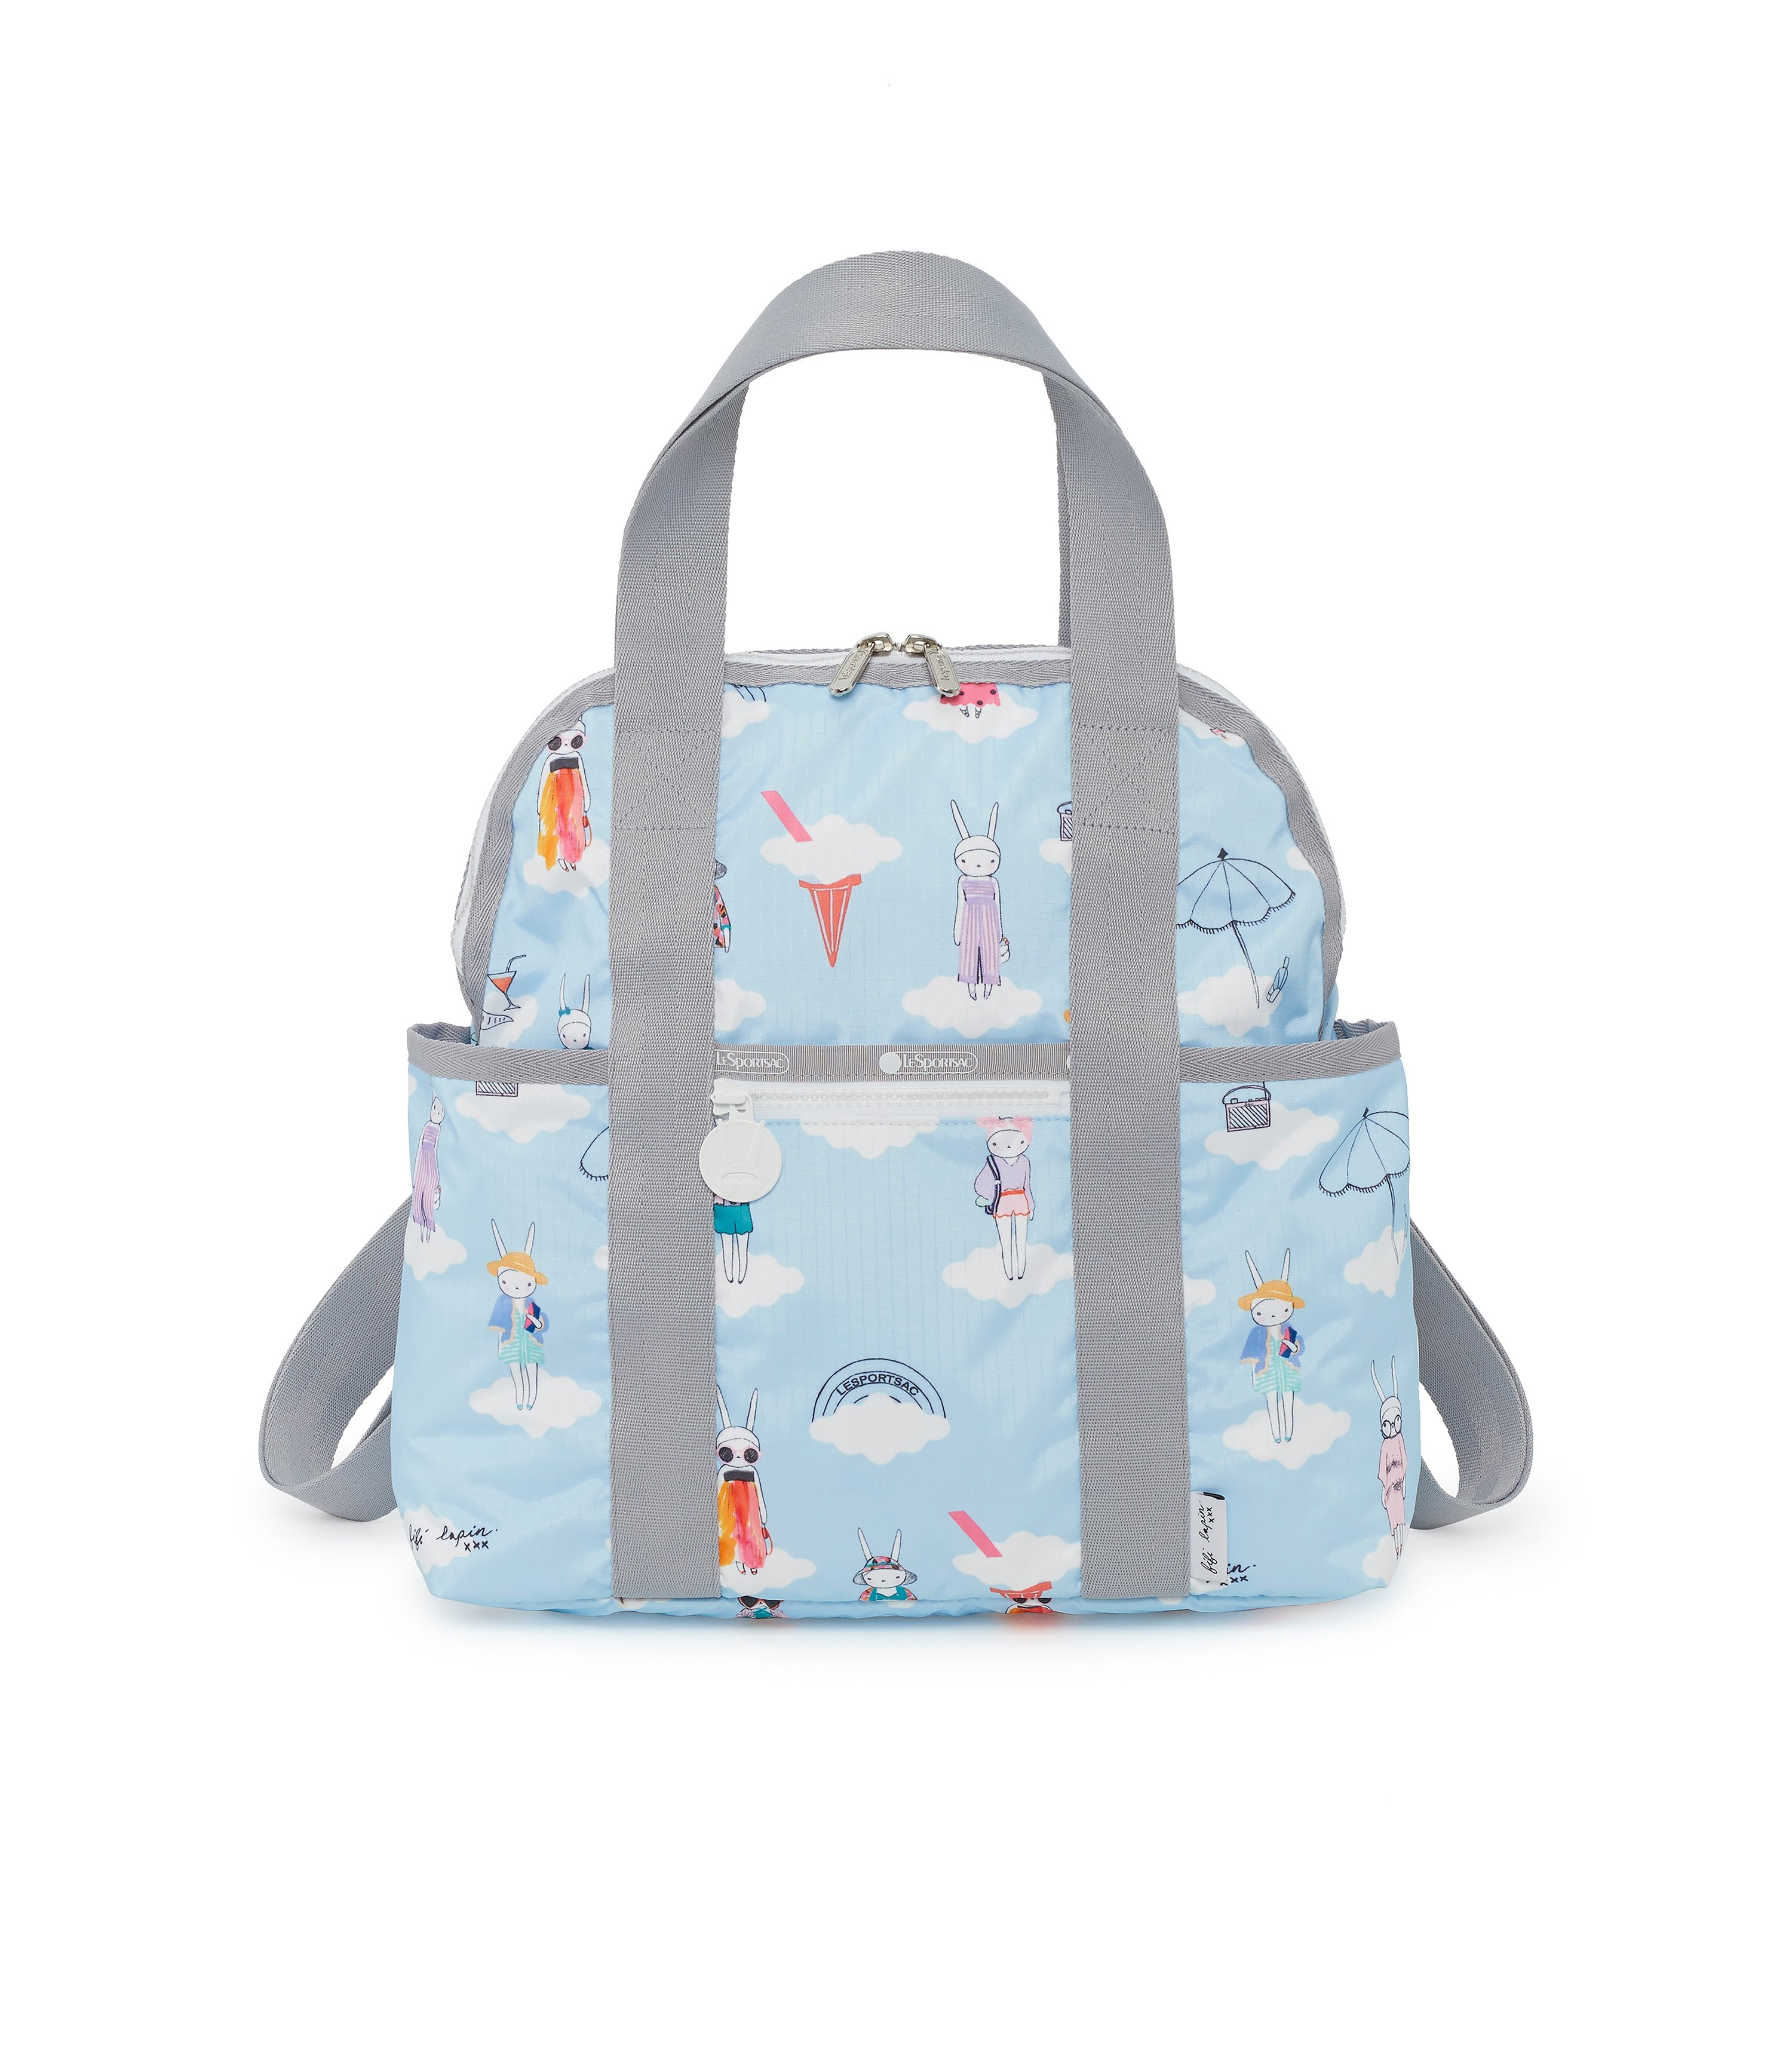 Double Trouble Backpacks, Water Resistant Backpack, Baby Bag, Fifi Lapin, Blue, Bunny print, Day Dreaming print